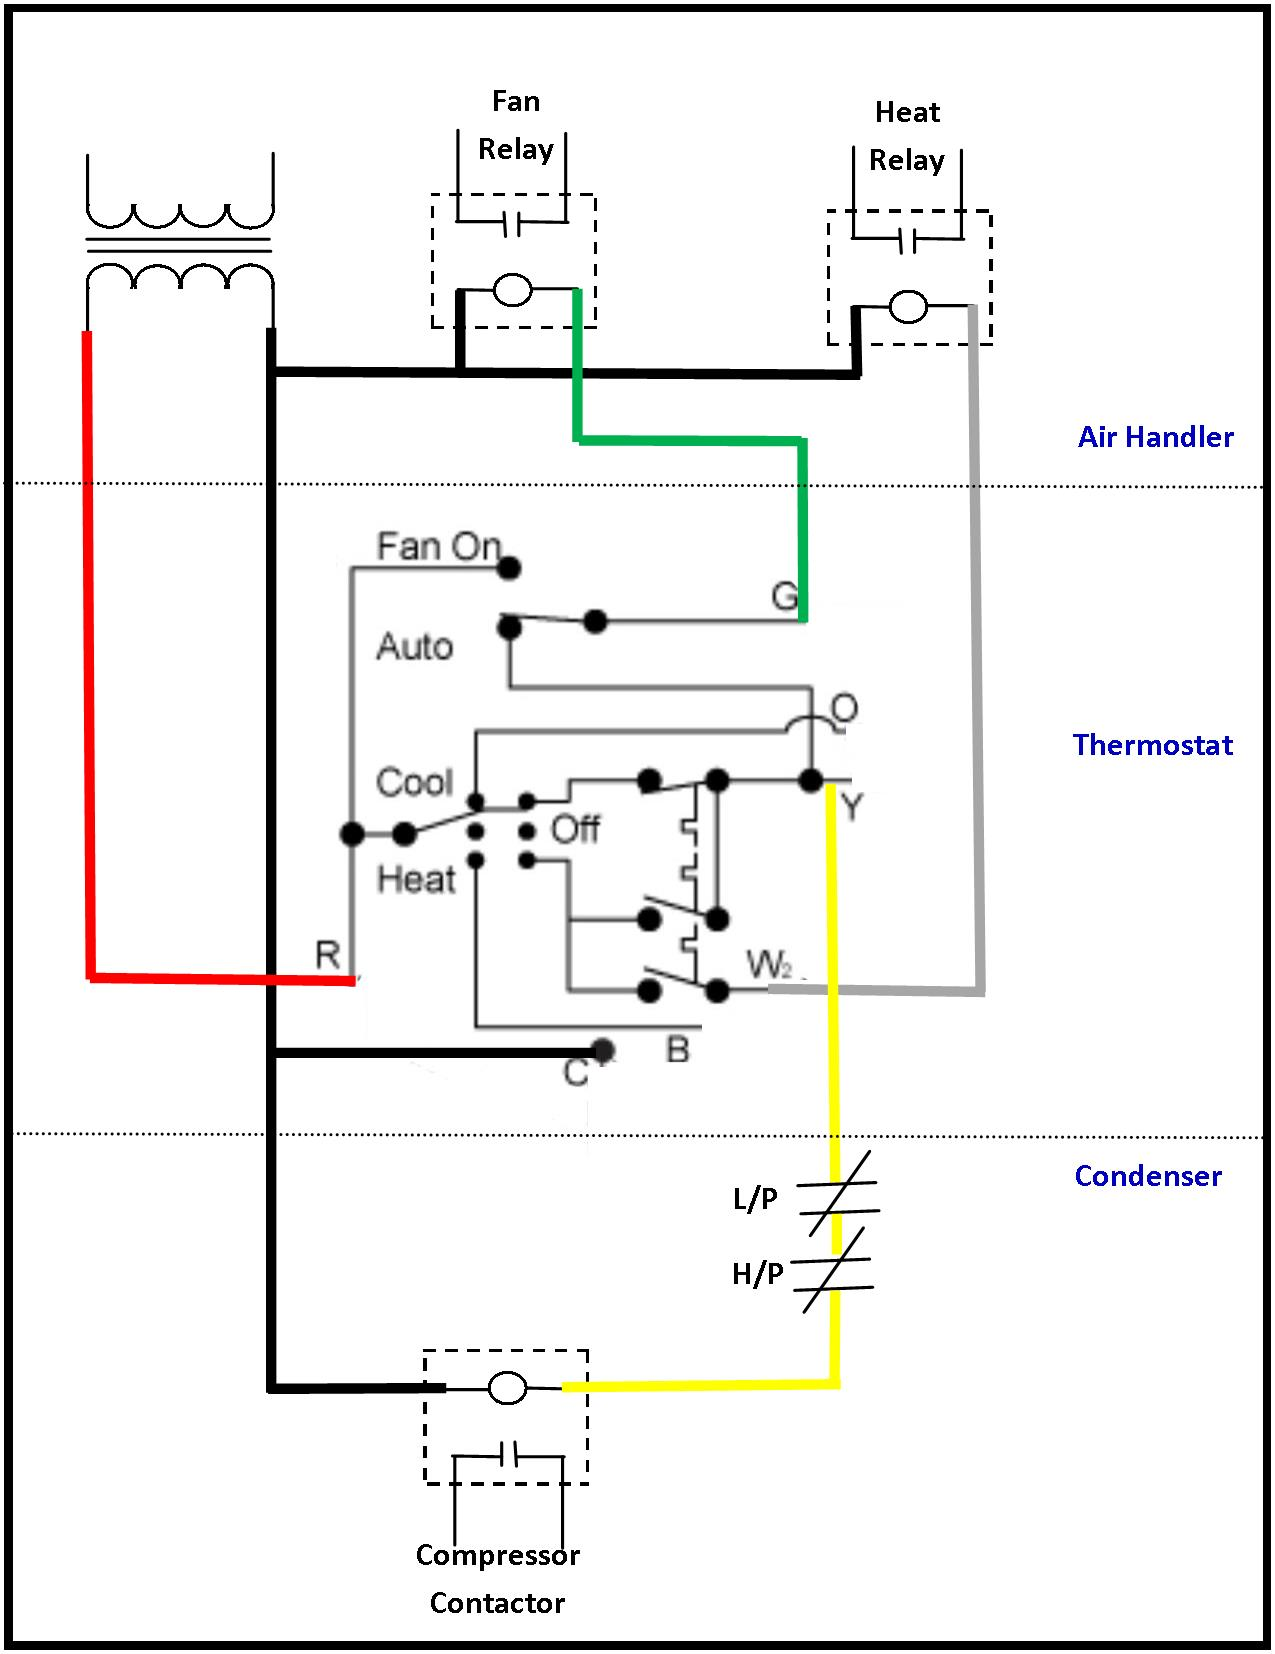 Fan Center Wiring Diagram For Furnace | Wiring Liry on